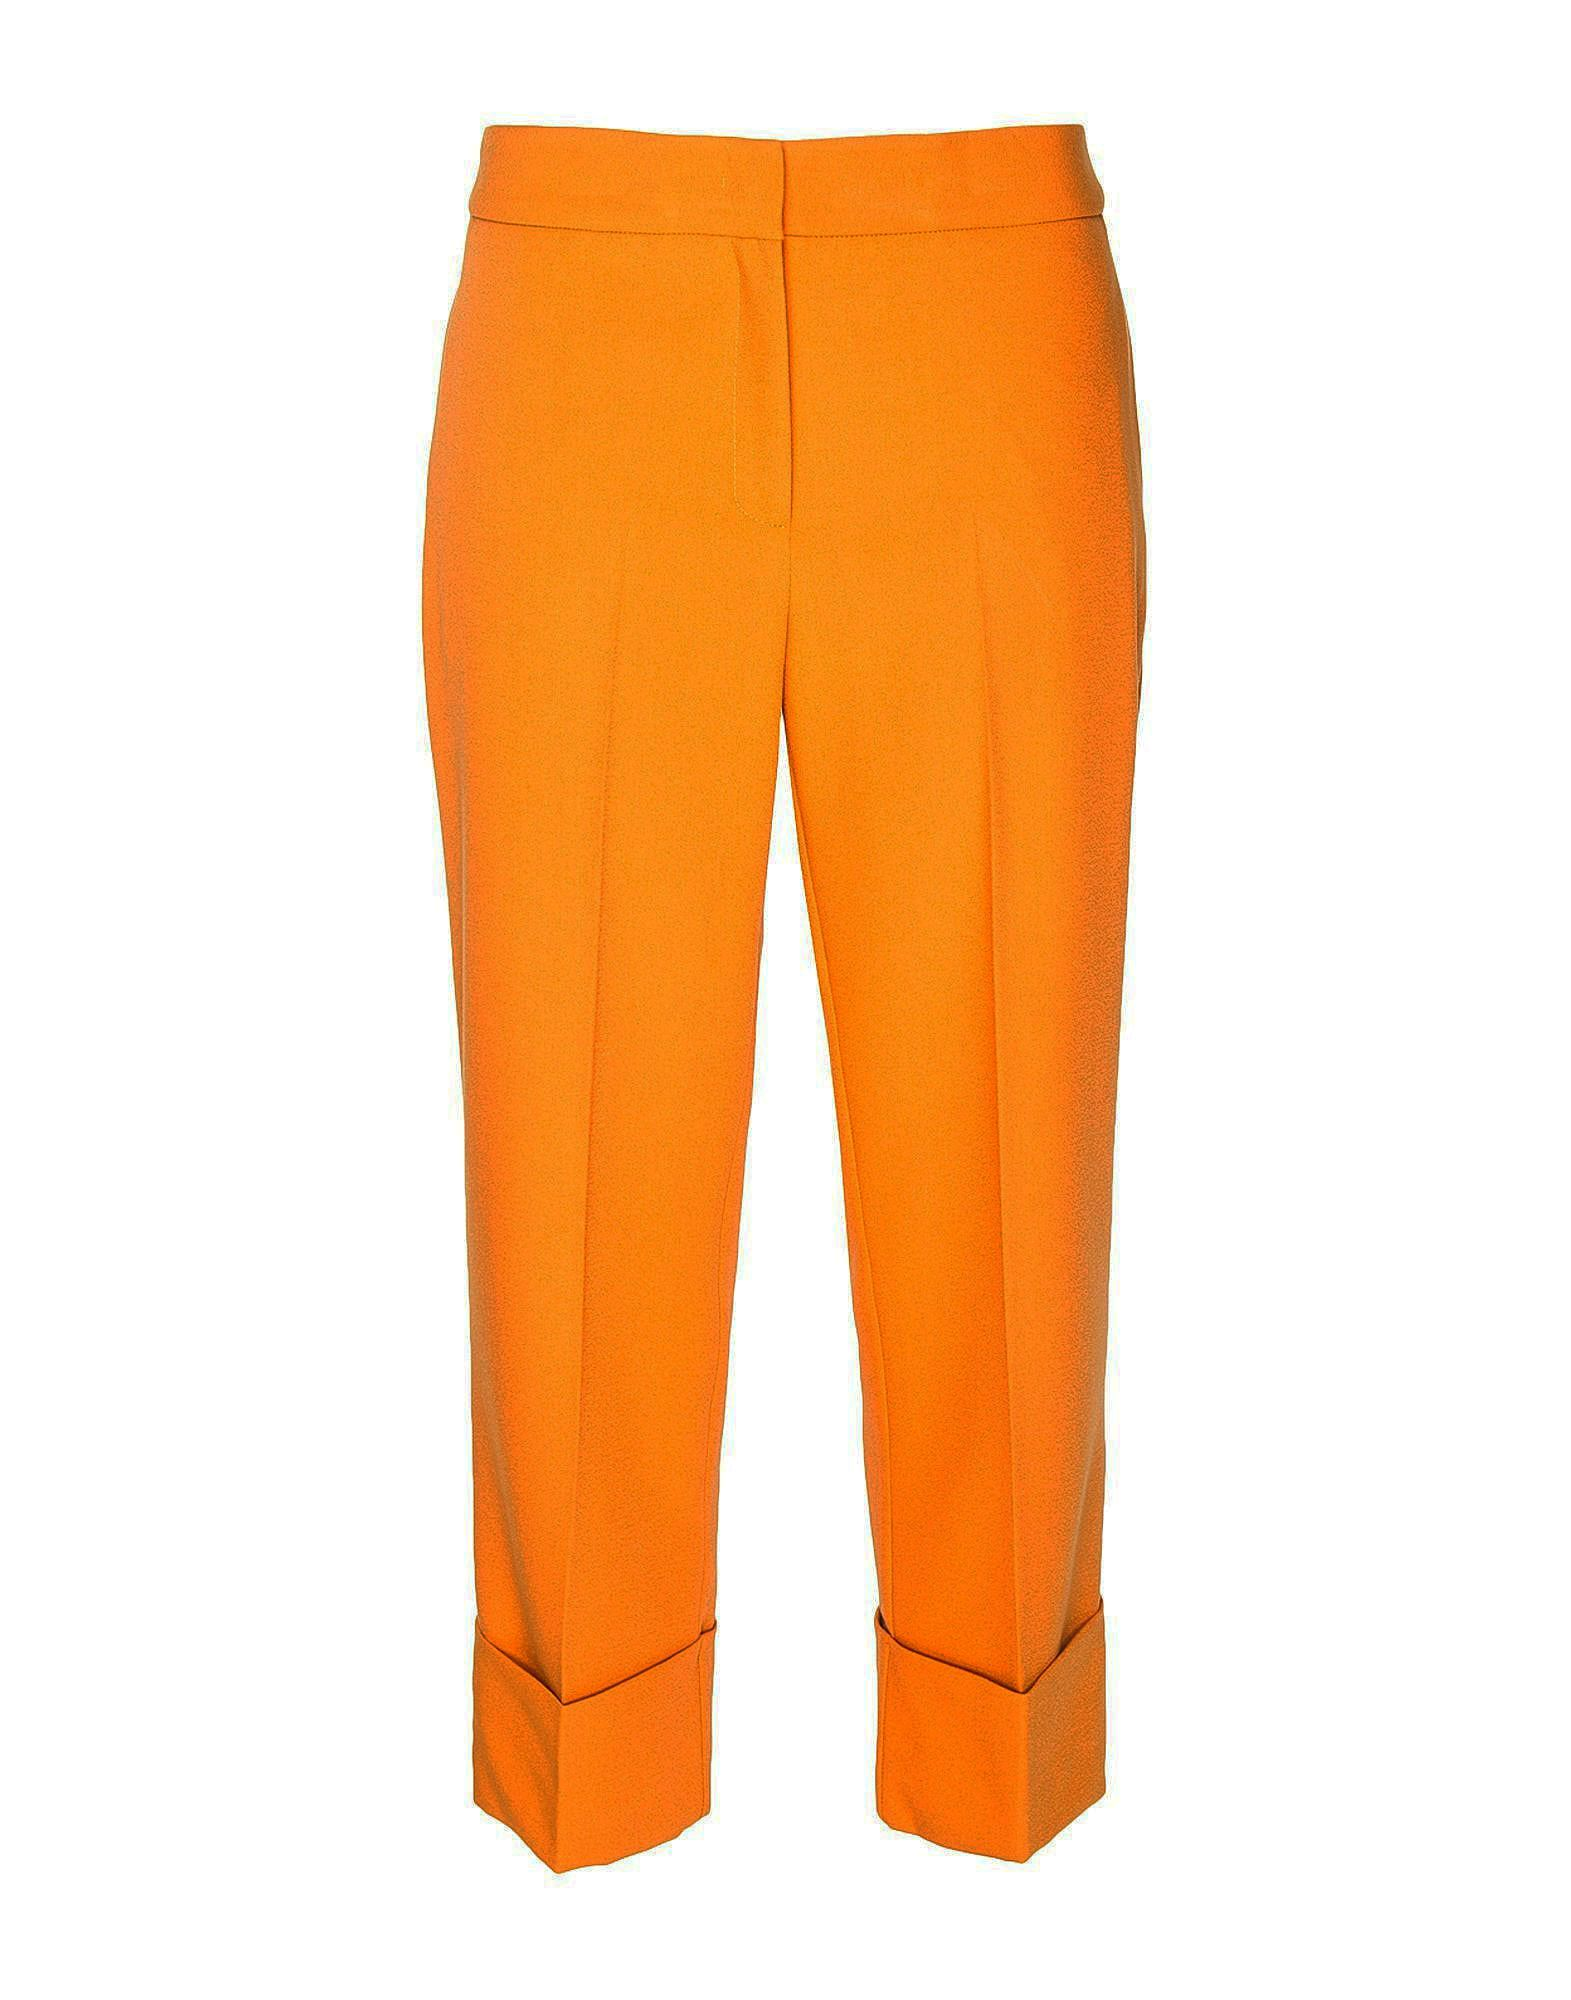 8 by YOOX Hose Damen Orange von 8 by YOOX